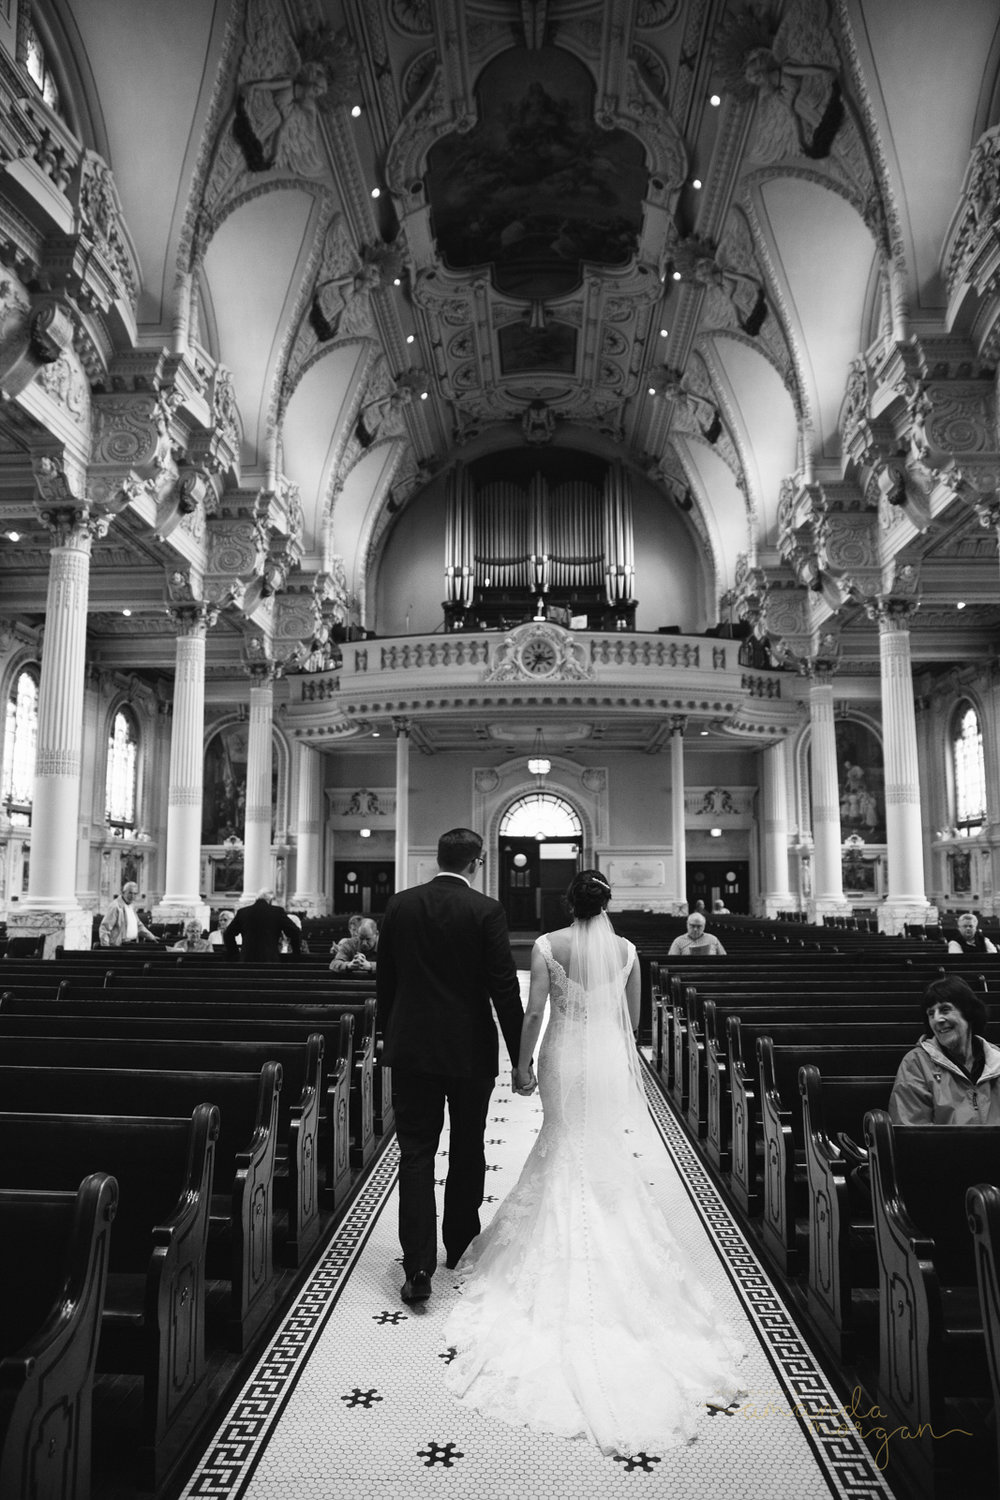 Notre-Dame-Catholic-Church-Wedding-Amanda-Morgan-15.jpg